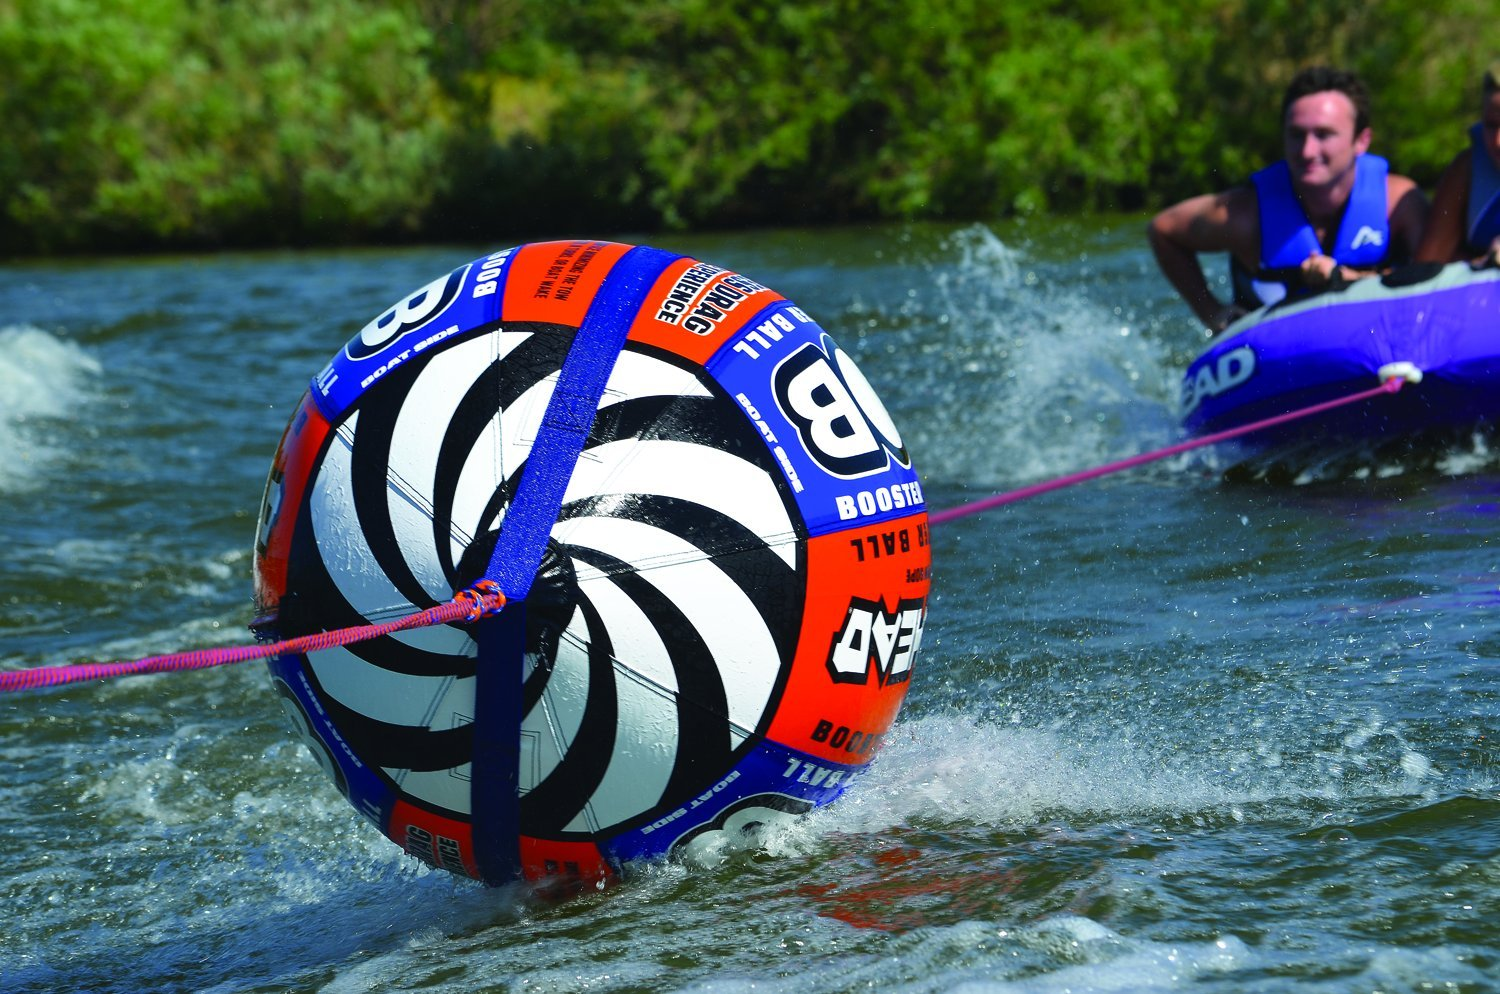 Airhead Bob Tow Rope With Inflatable Buoy Waterskiing Towing Harness Towables Sports Outdoors